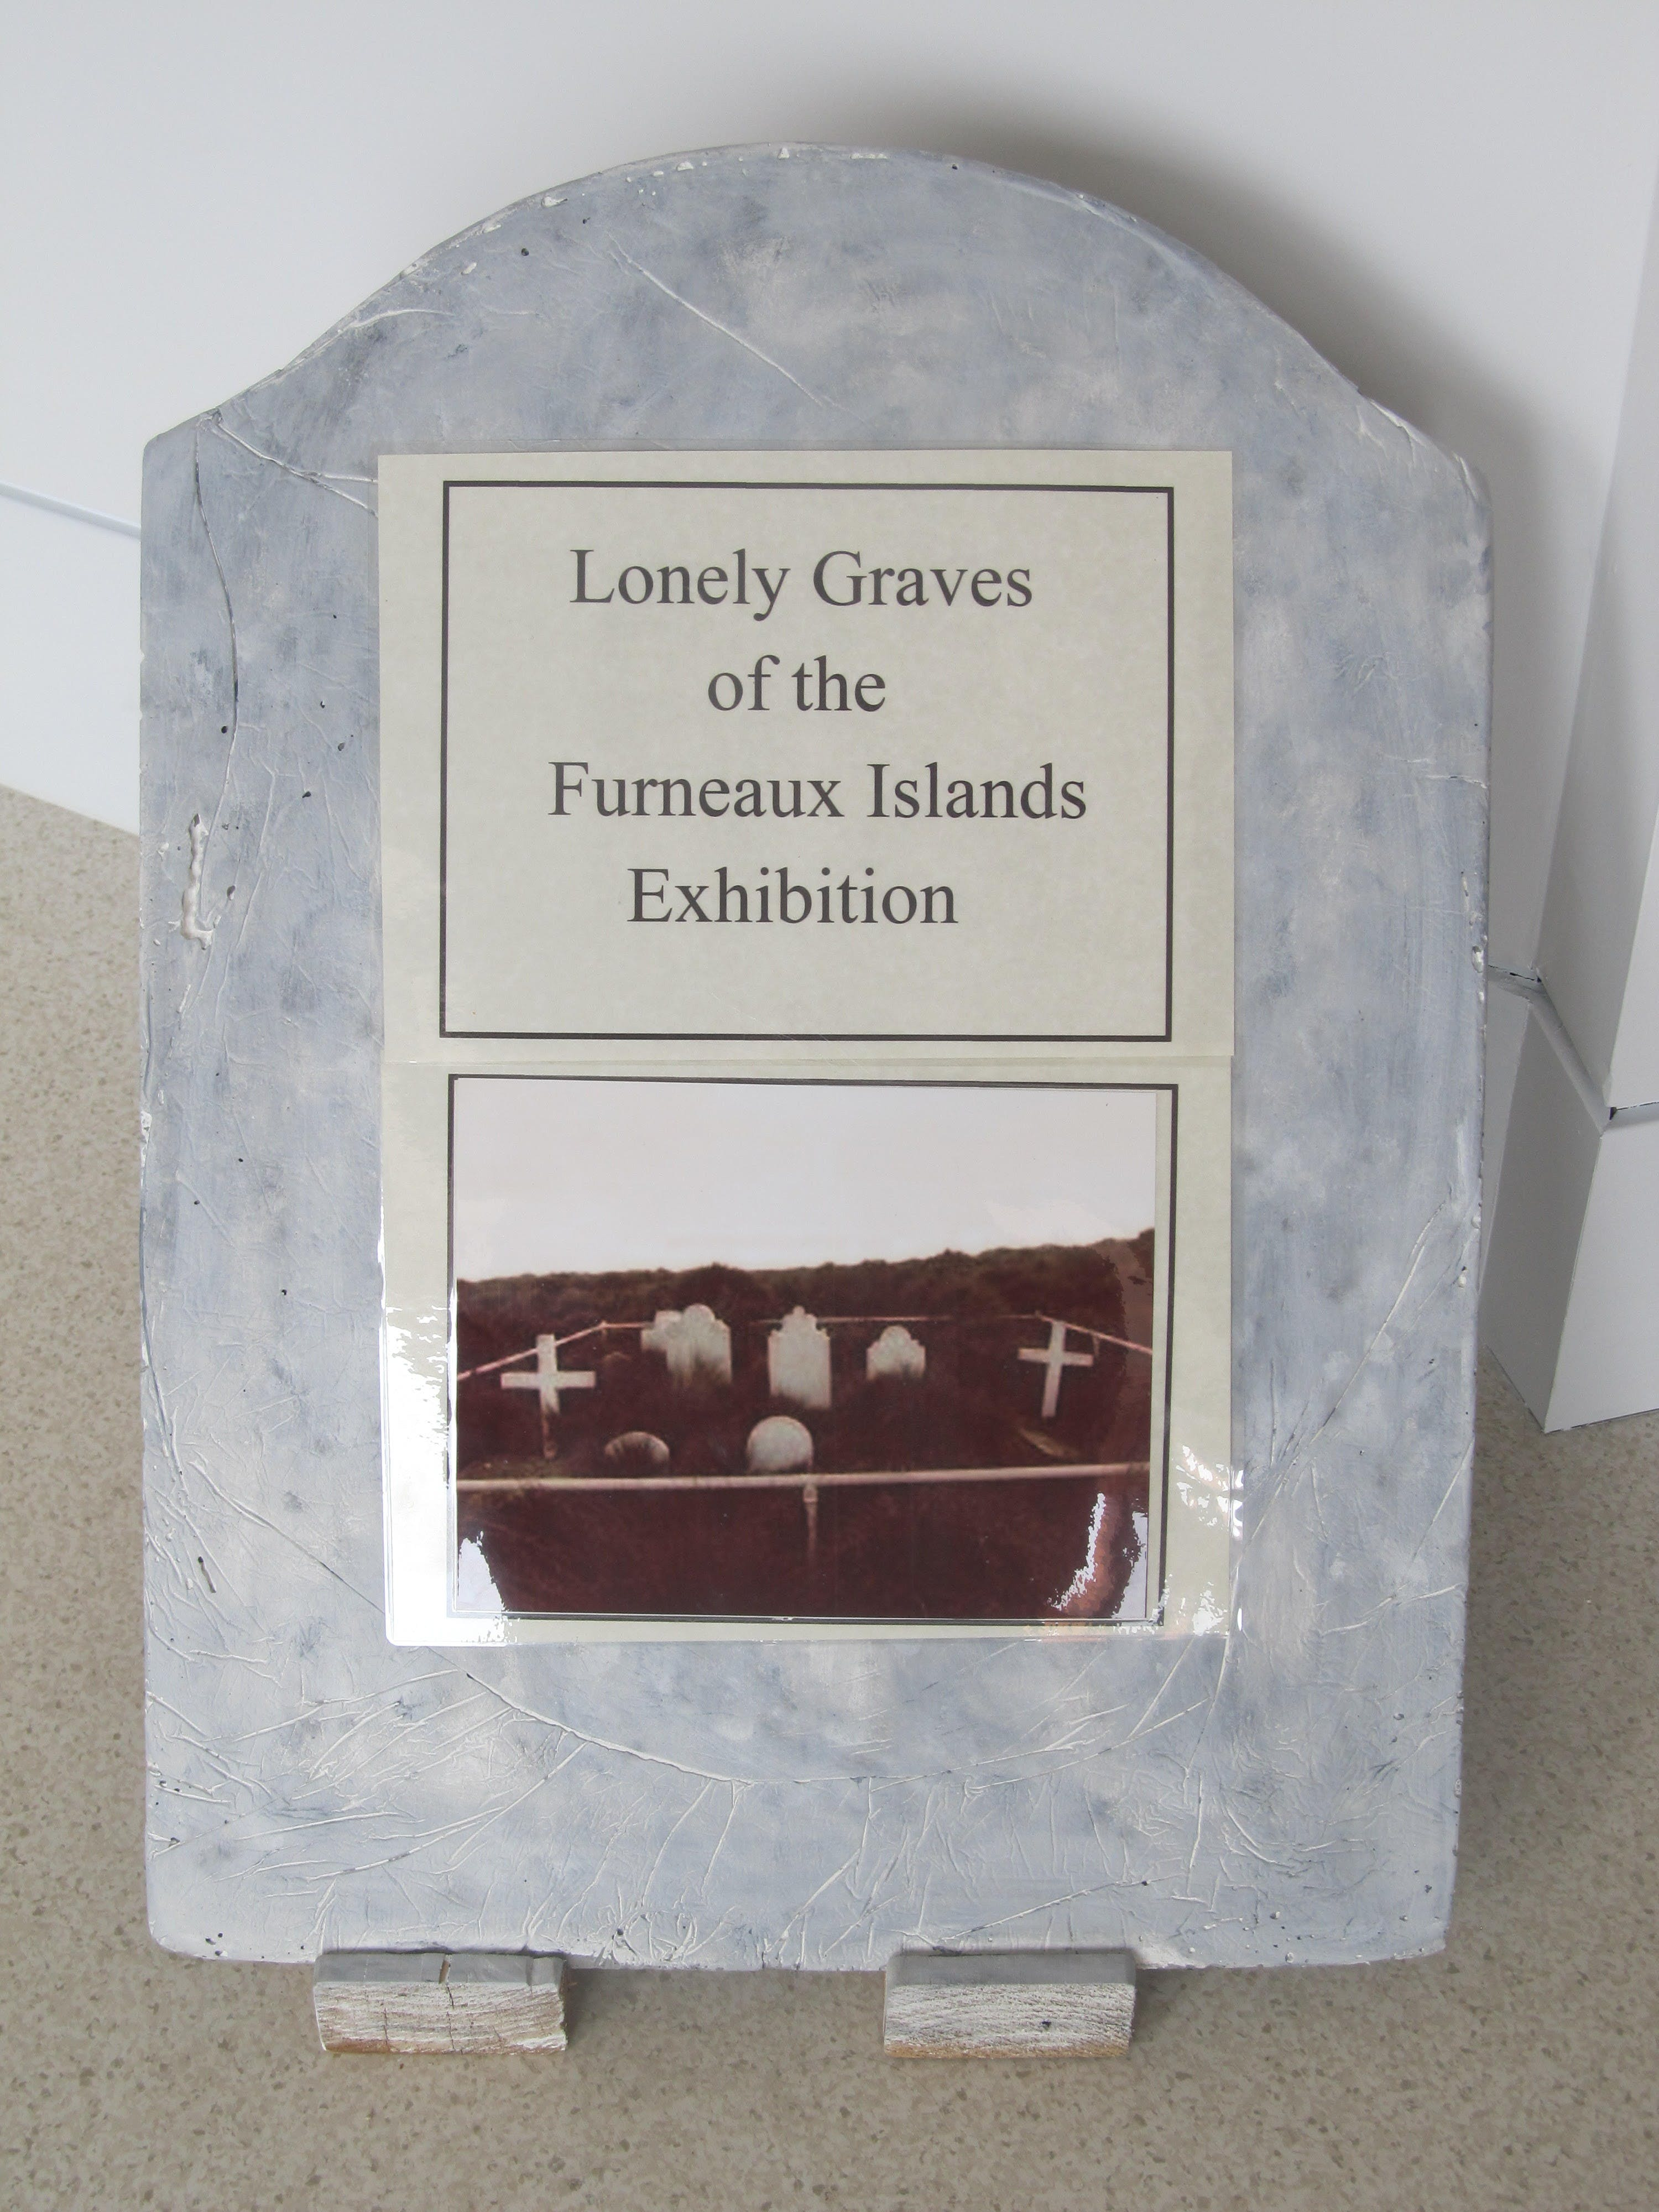 Lonely Graves of the Furneaux Islands Exhibition - Wagga Wagga Accommodation